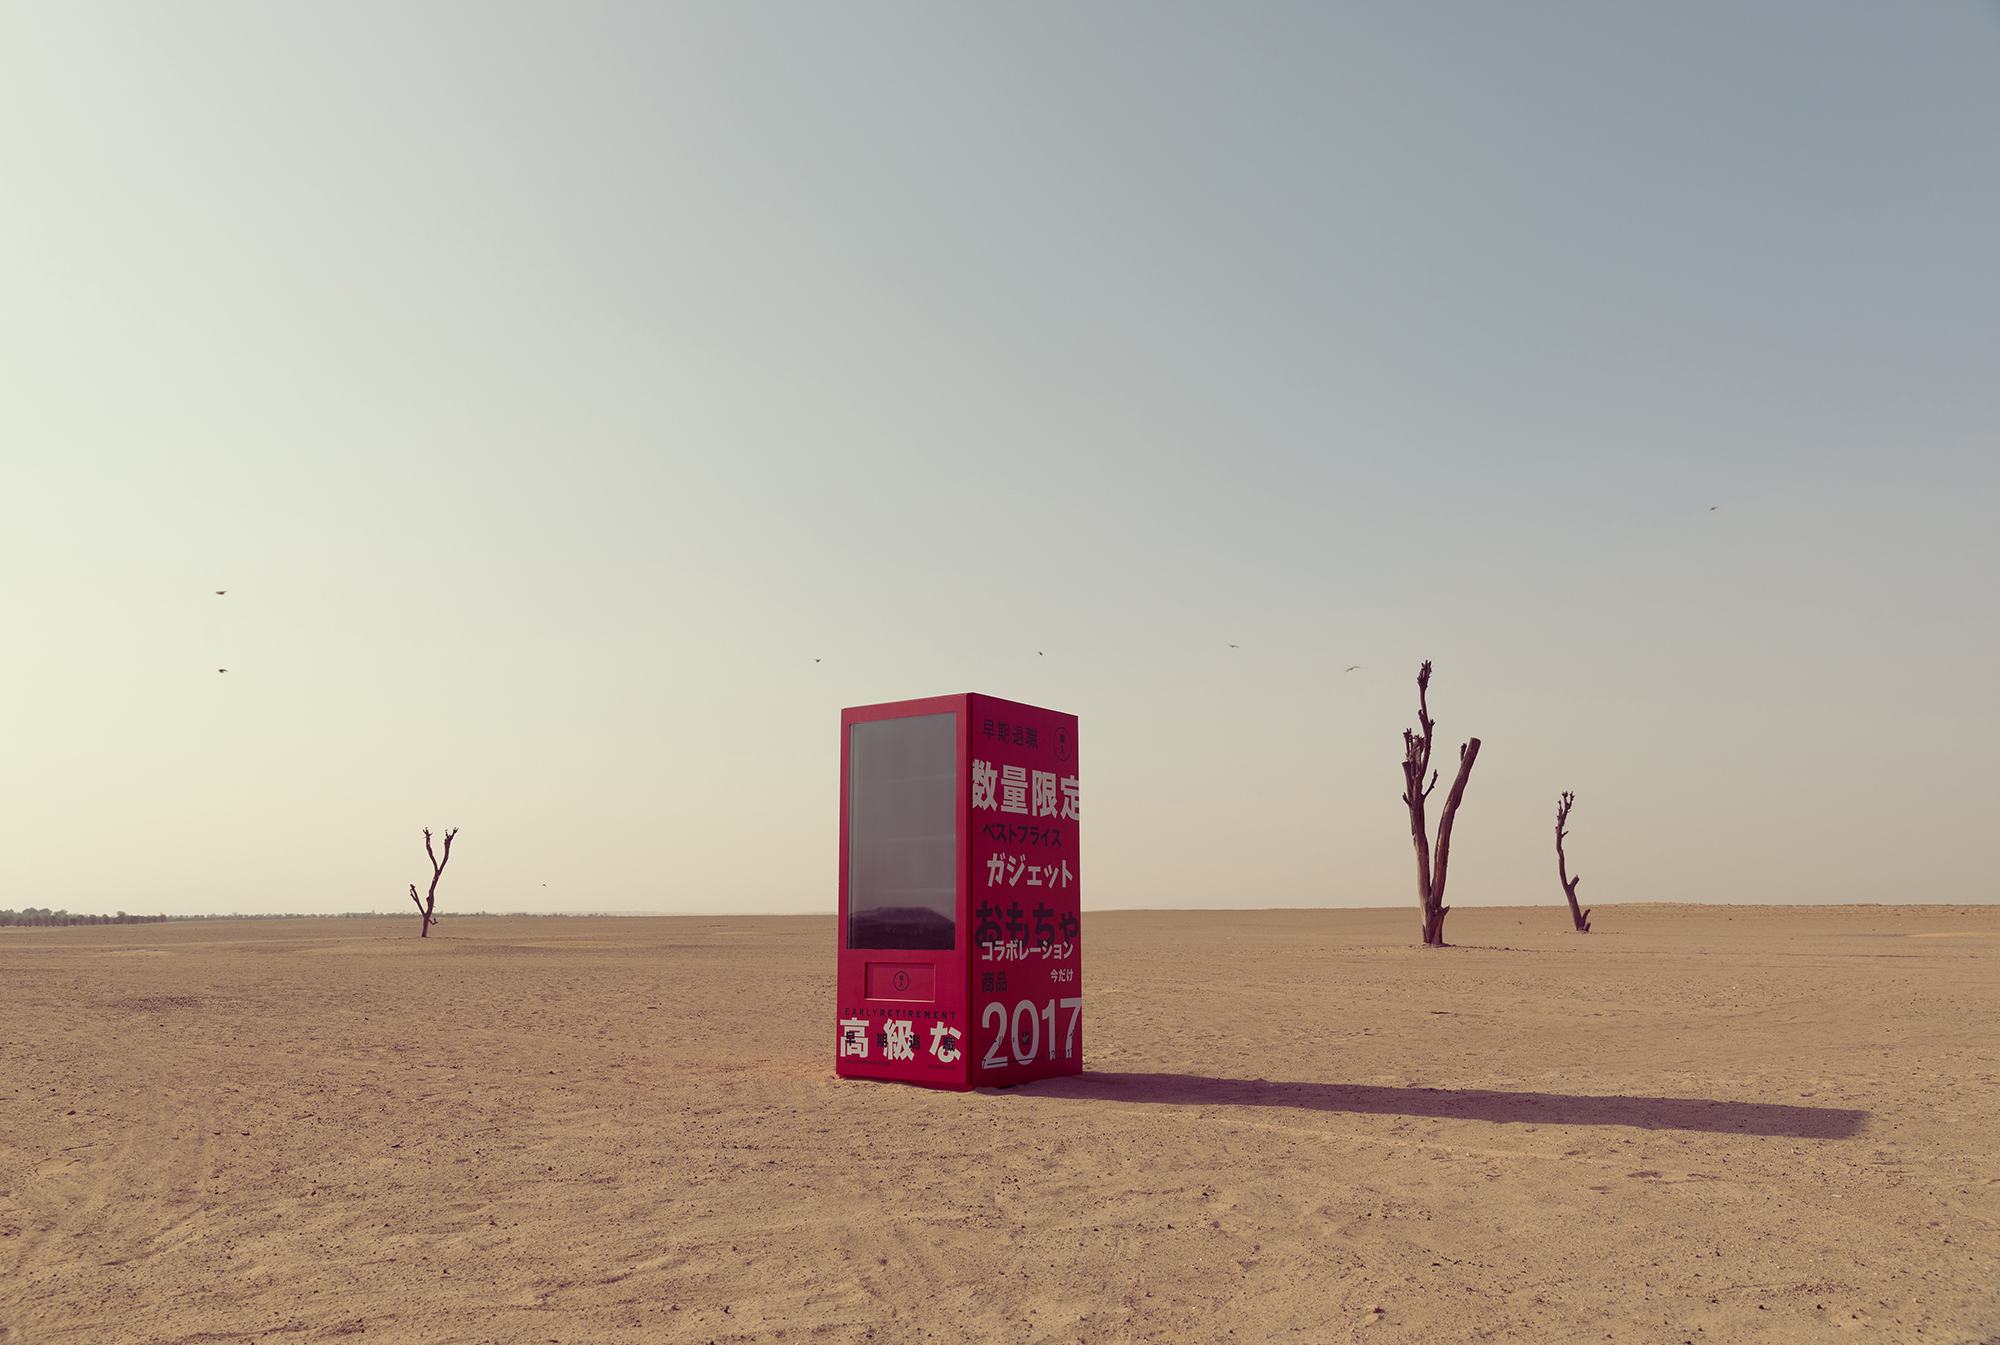 Sole_DXB_ER_Vending_Machine_6.jpg